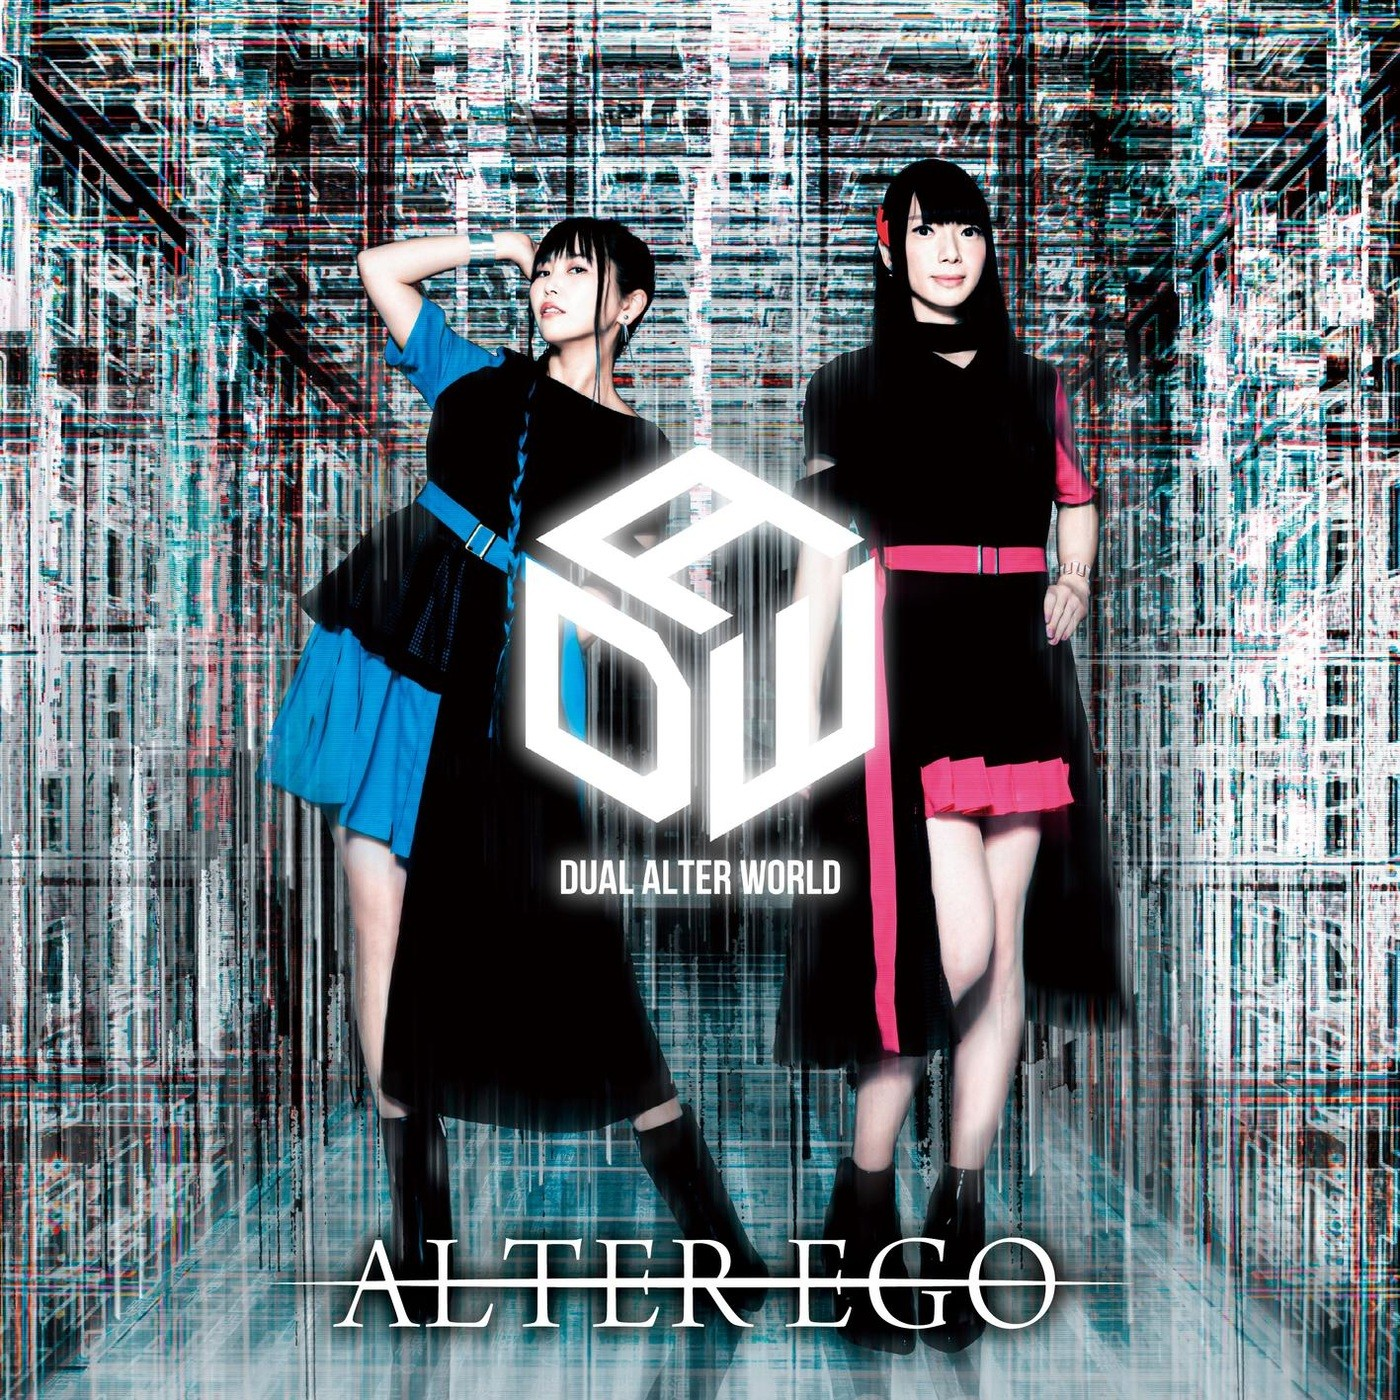 [Album] Dual Alter World – ALTER EGO [FLAC / 24bit Lossless / WEB] [2019.09.18]